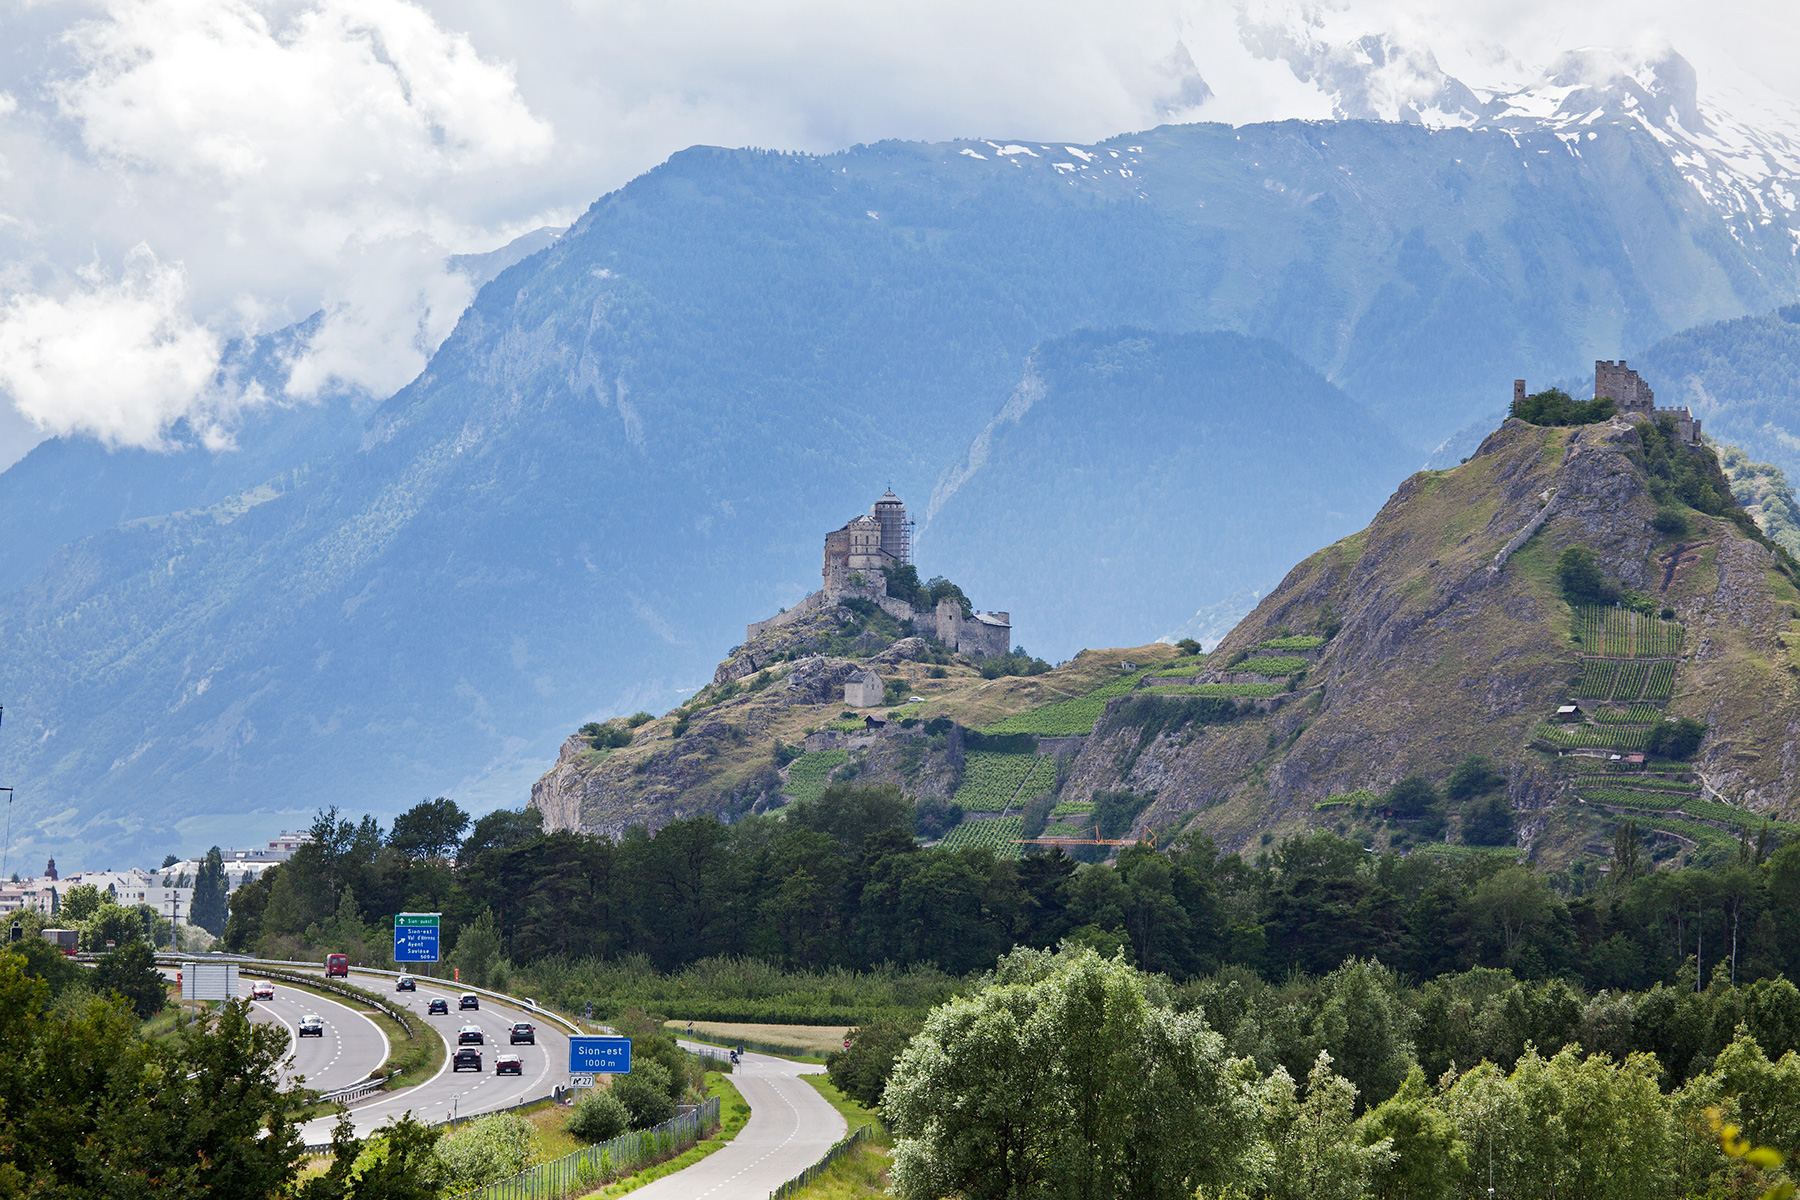 Free download high resolution image - free image free photo free stock image public domain picture -Sion skyline with Chateau de Tourbillon